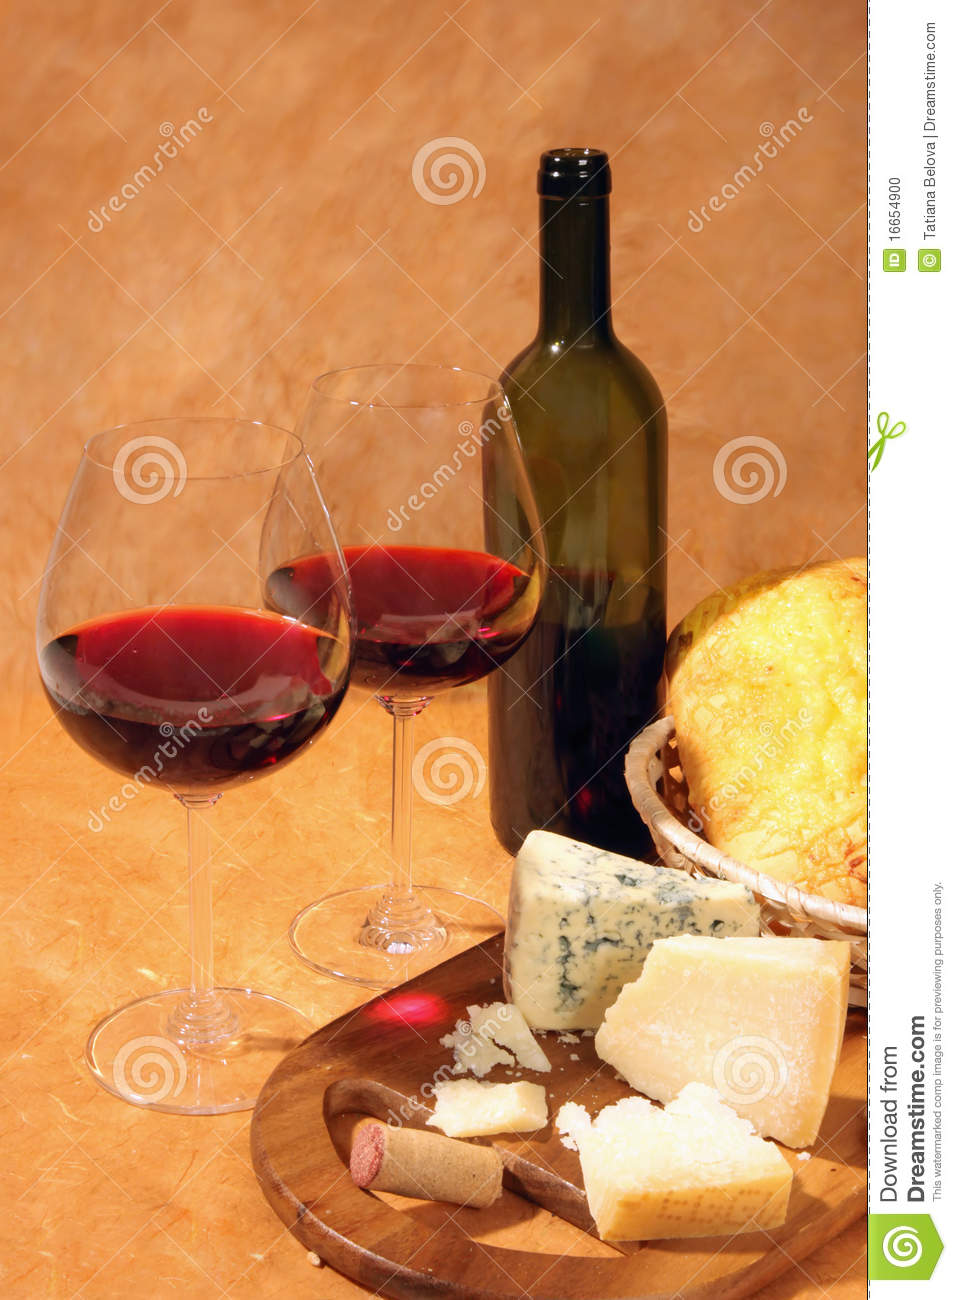 Red Wine And Cheese Stock Photo - Image: 16654900